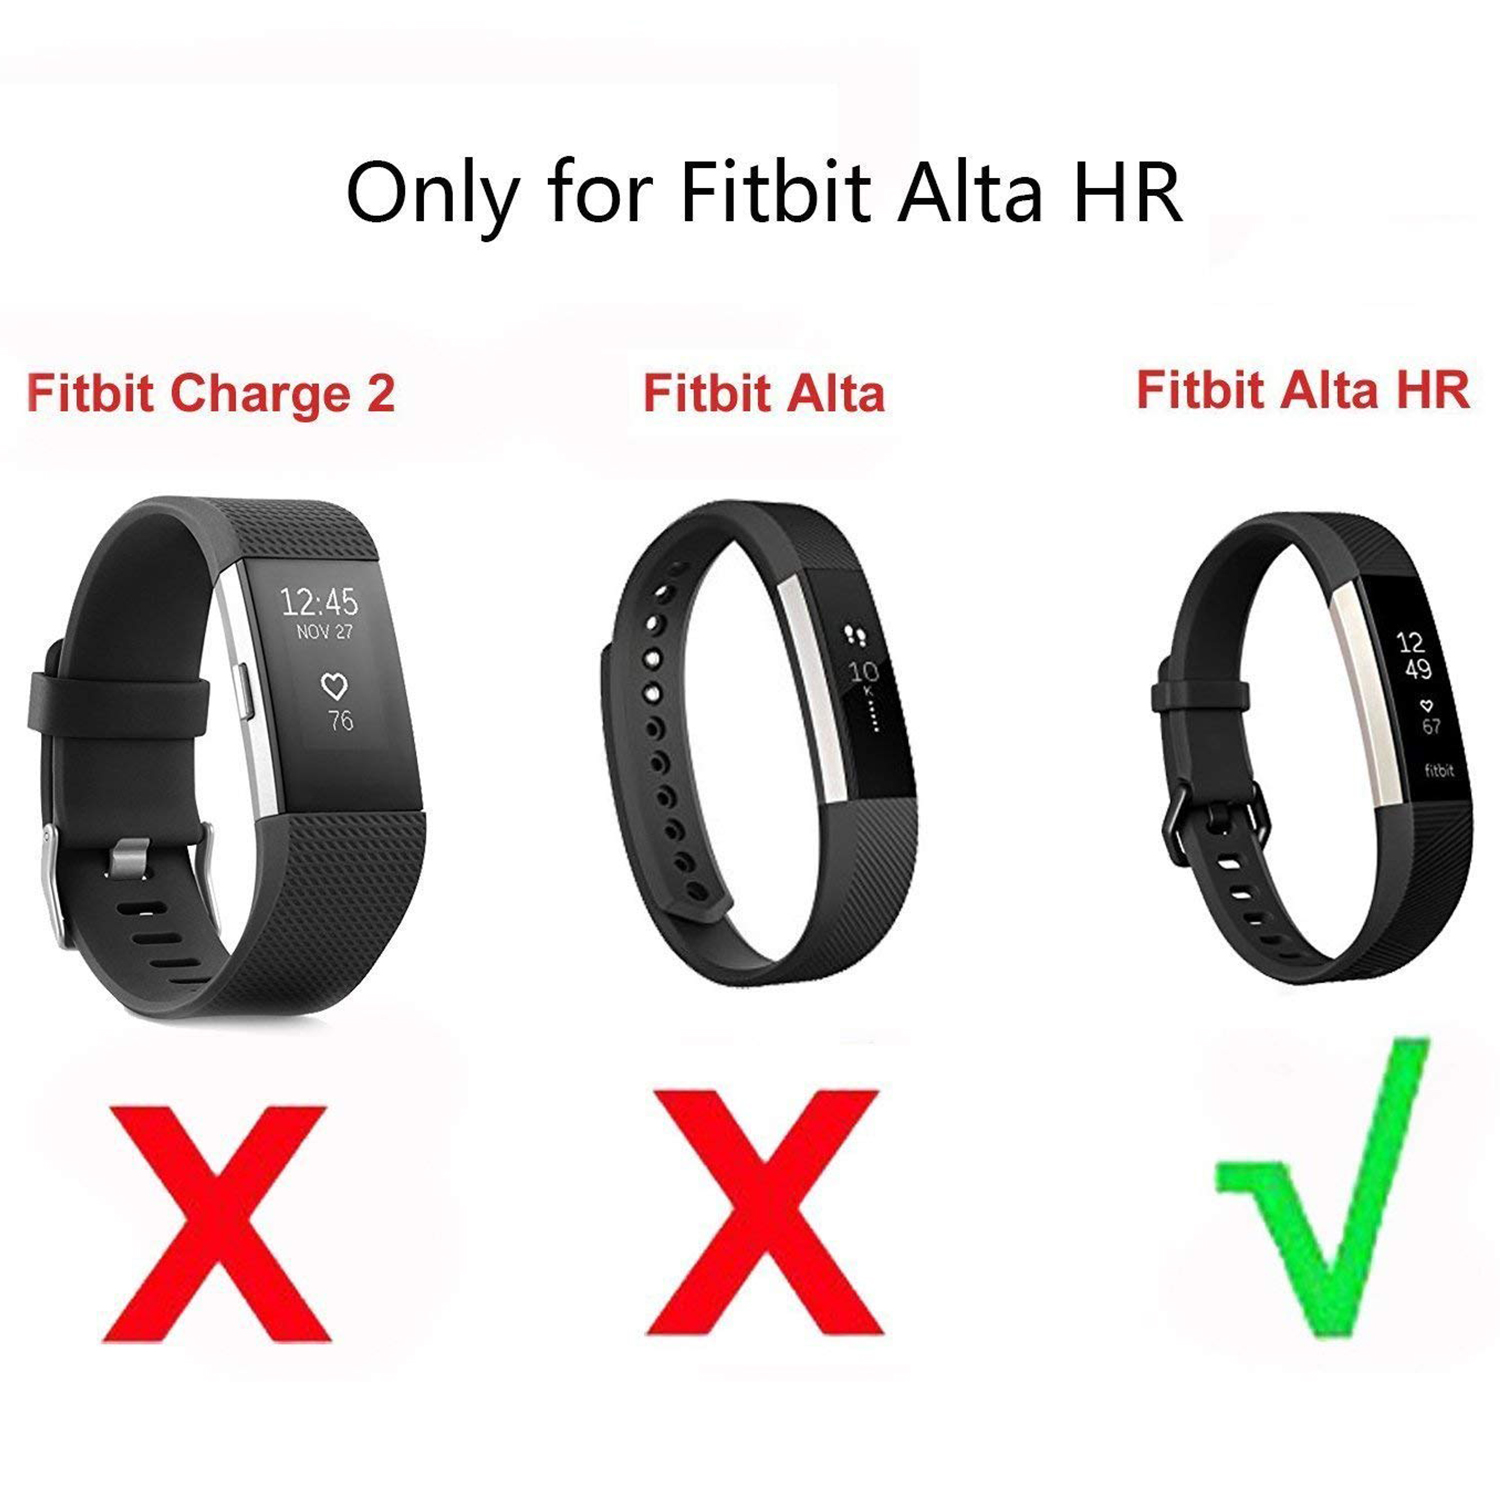 for Fitbit ALTA HR Charger With Reset Button Replacement USB Charging Cable  Fib5